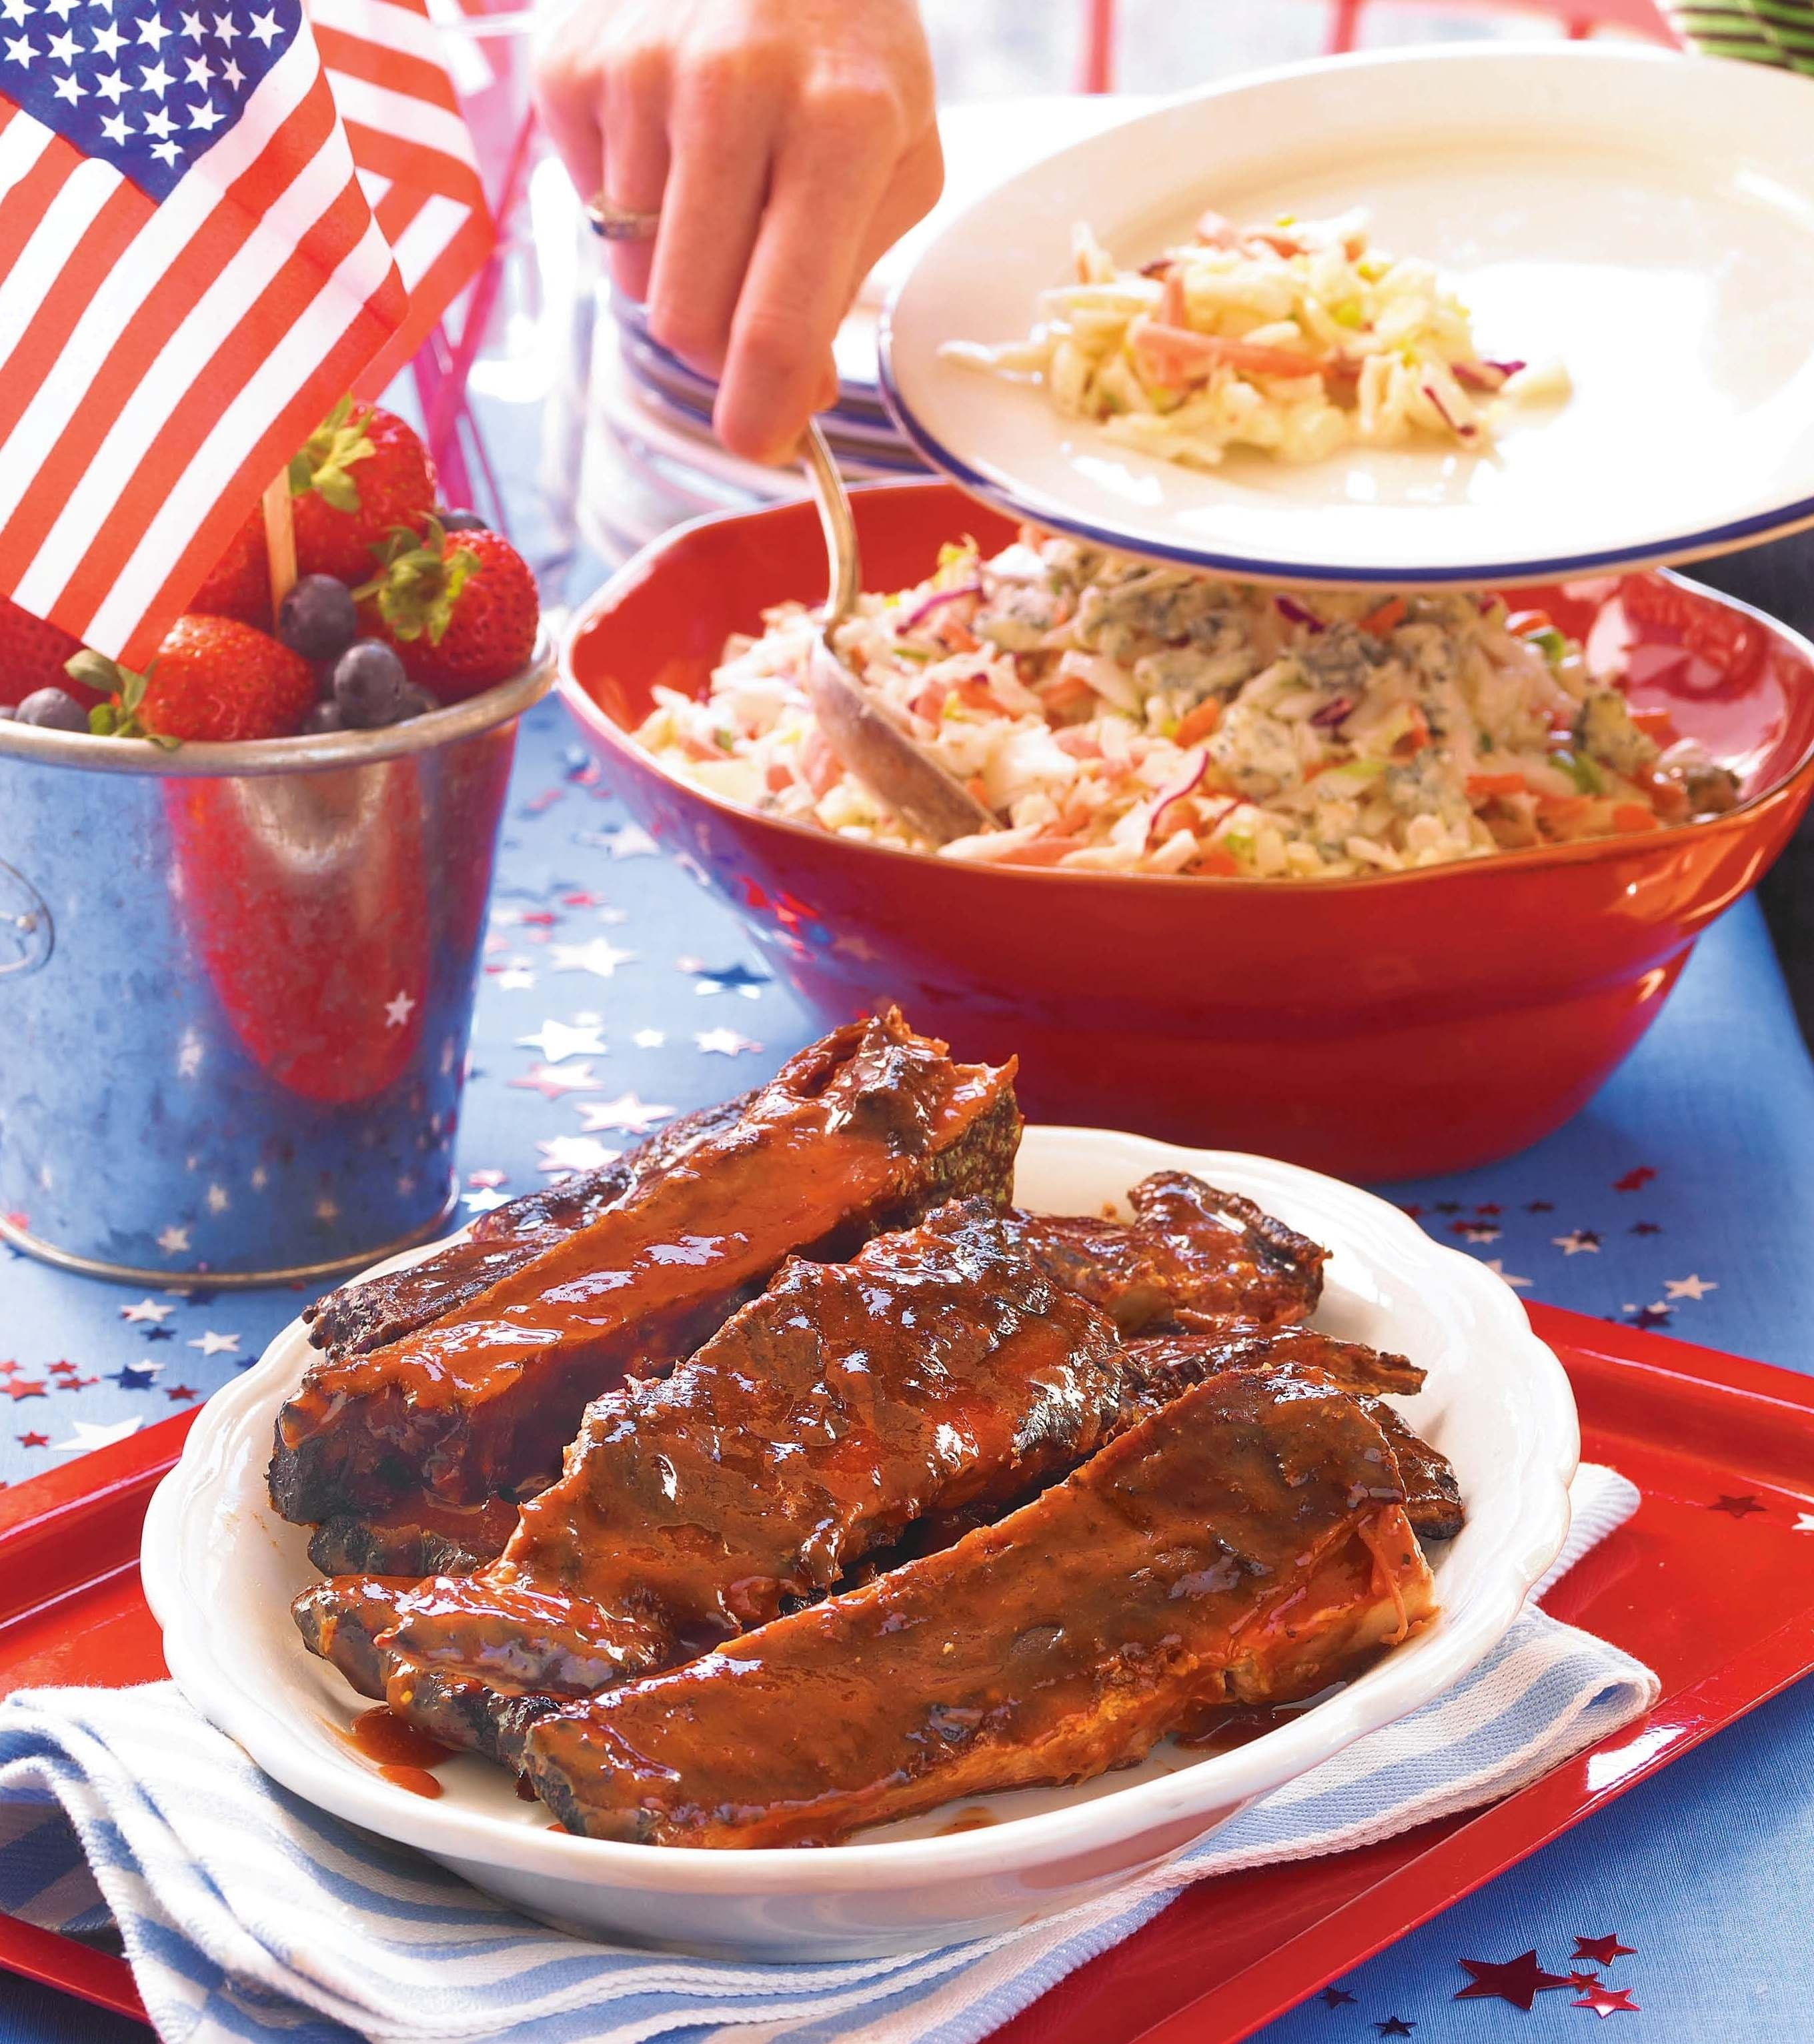 10 Lovable 4Th Of July Menu Ideas Martha Stewart family fun july 4 ideas 4th of july recipe ideas from the half 5 2020